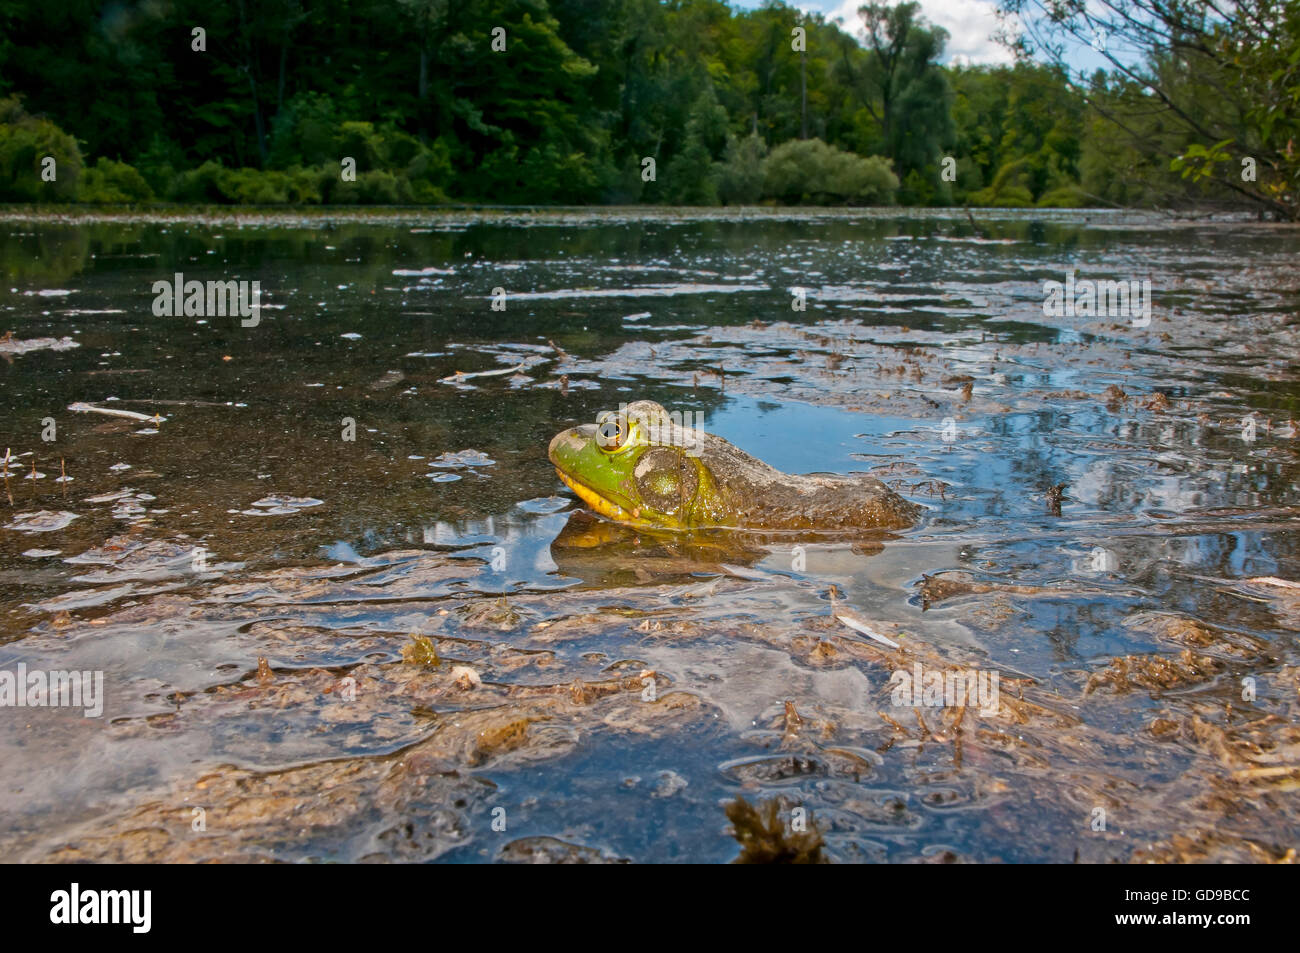 Frog in a marsh, North America Stock Photo